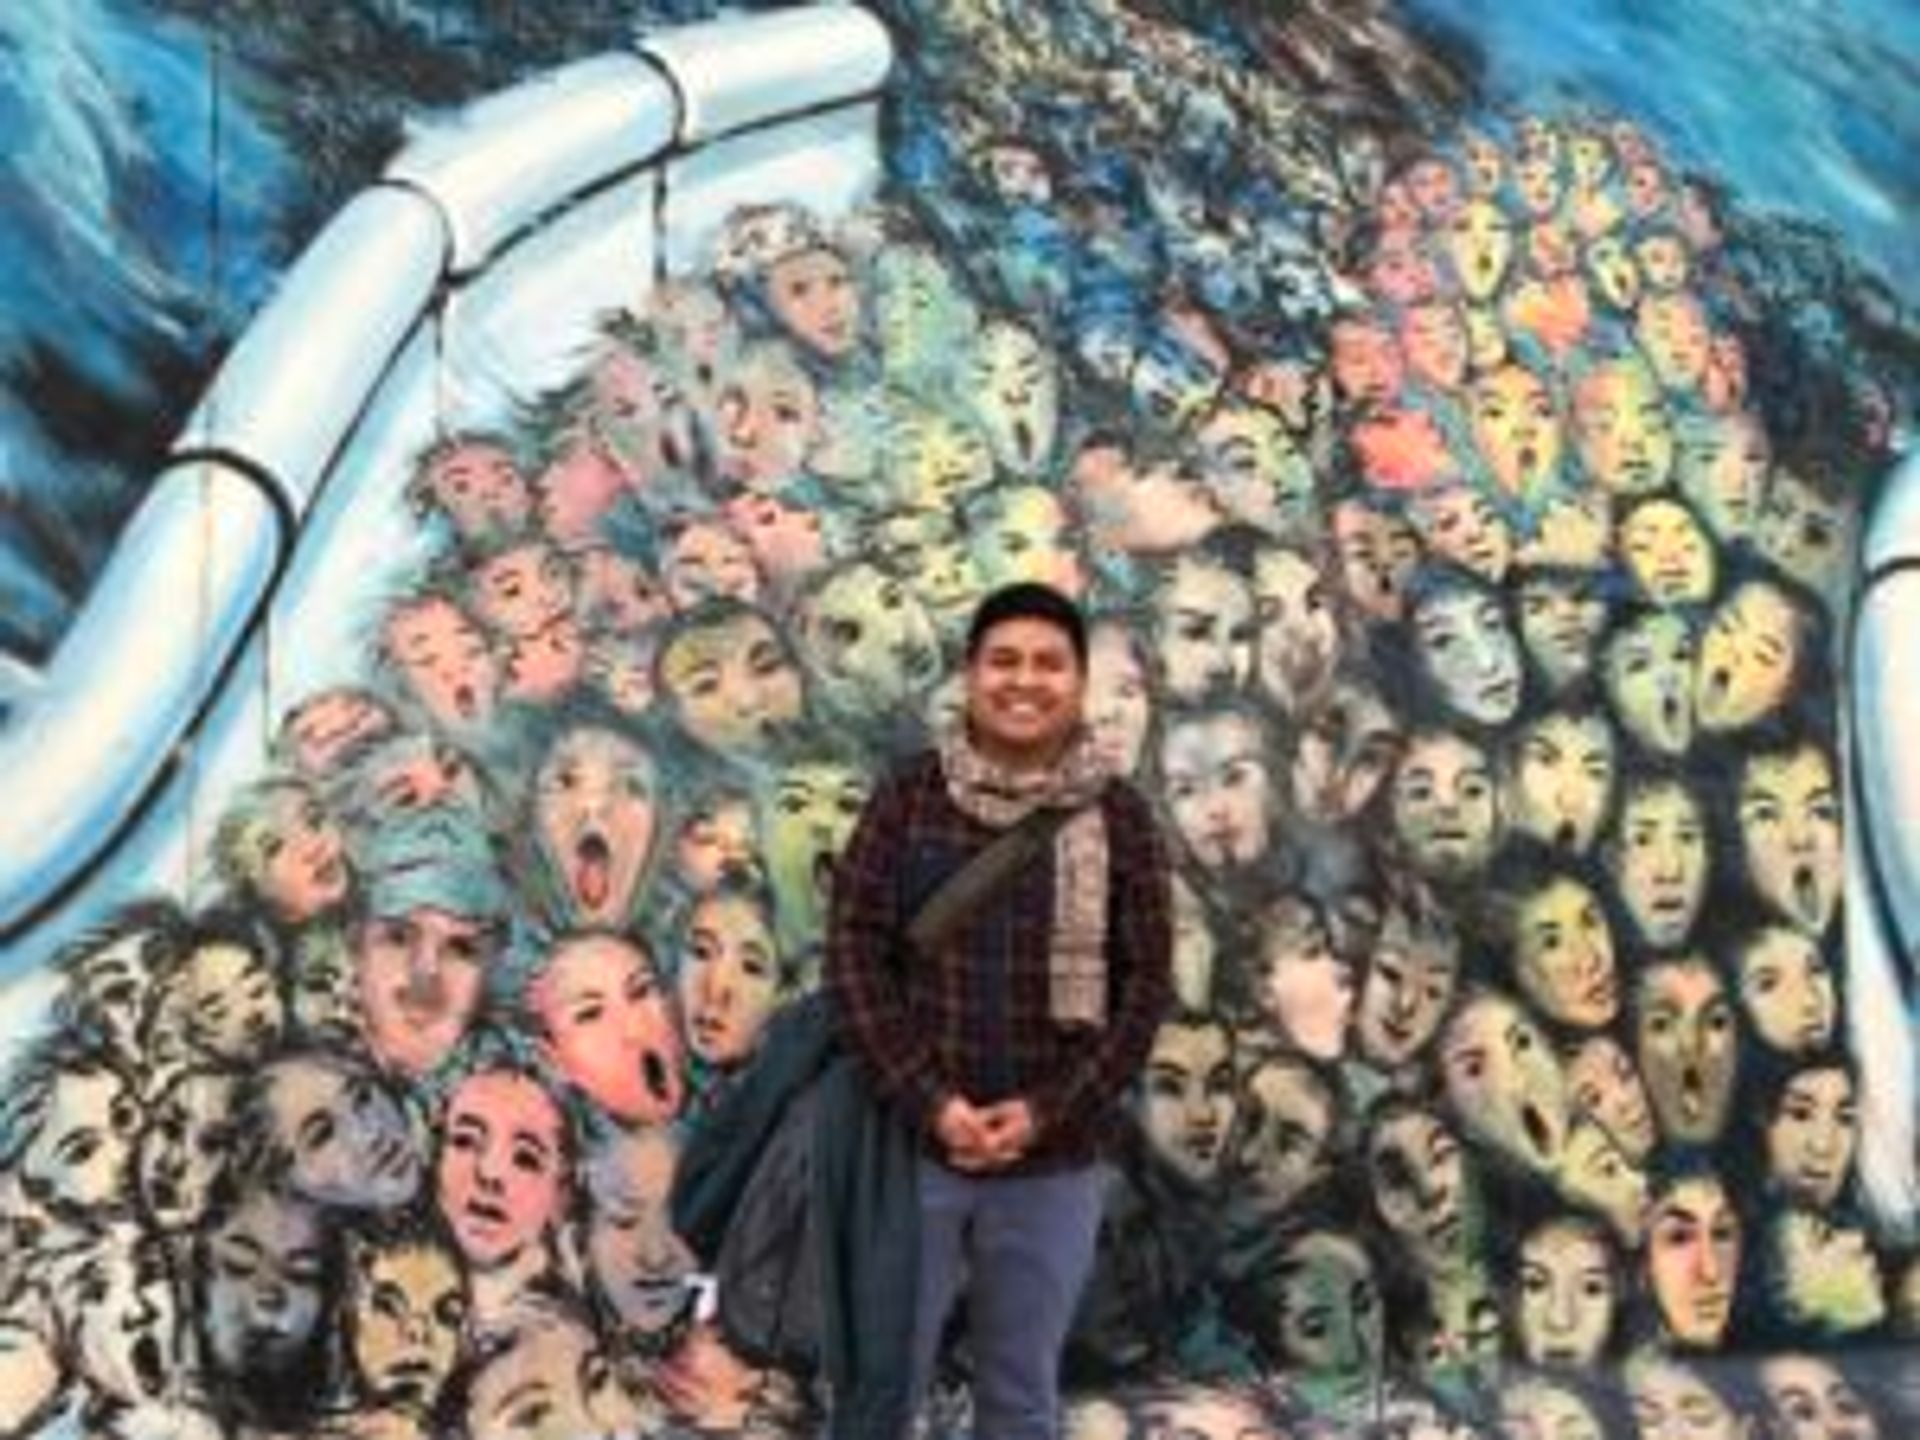 Camilo stands in front of a Berlin wall mural.